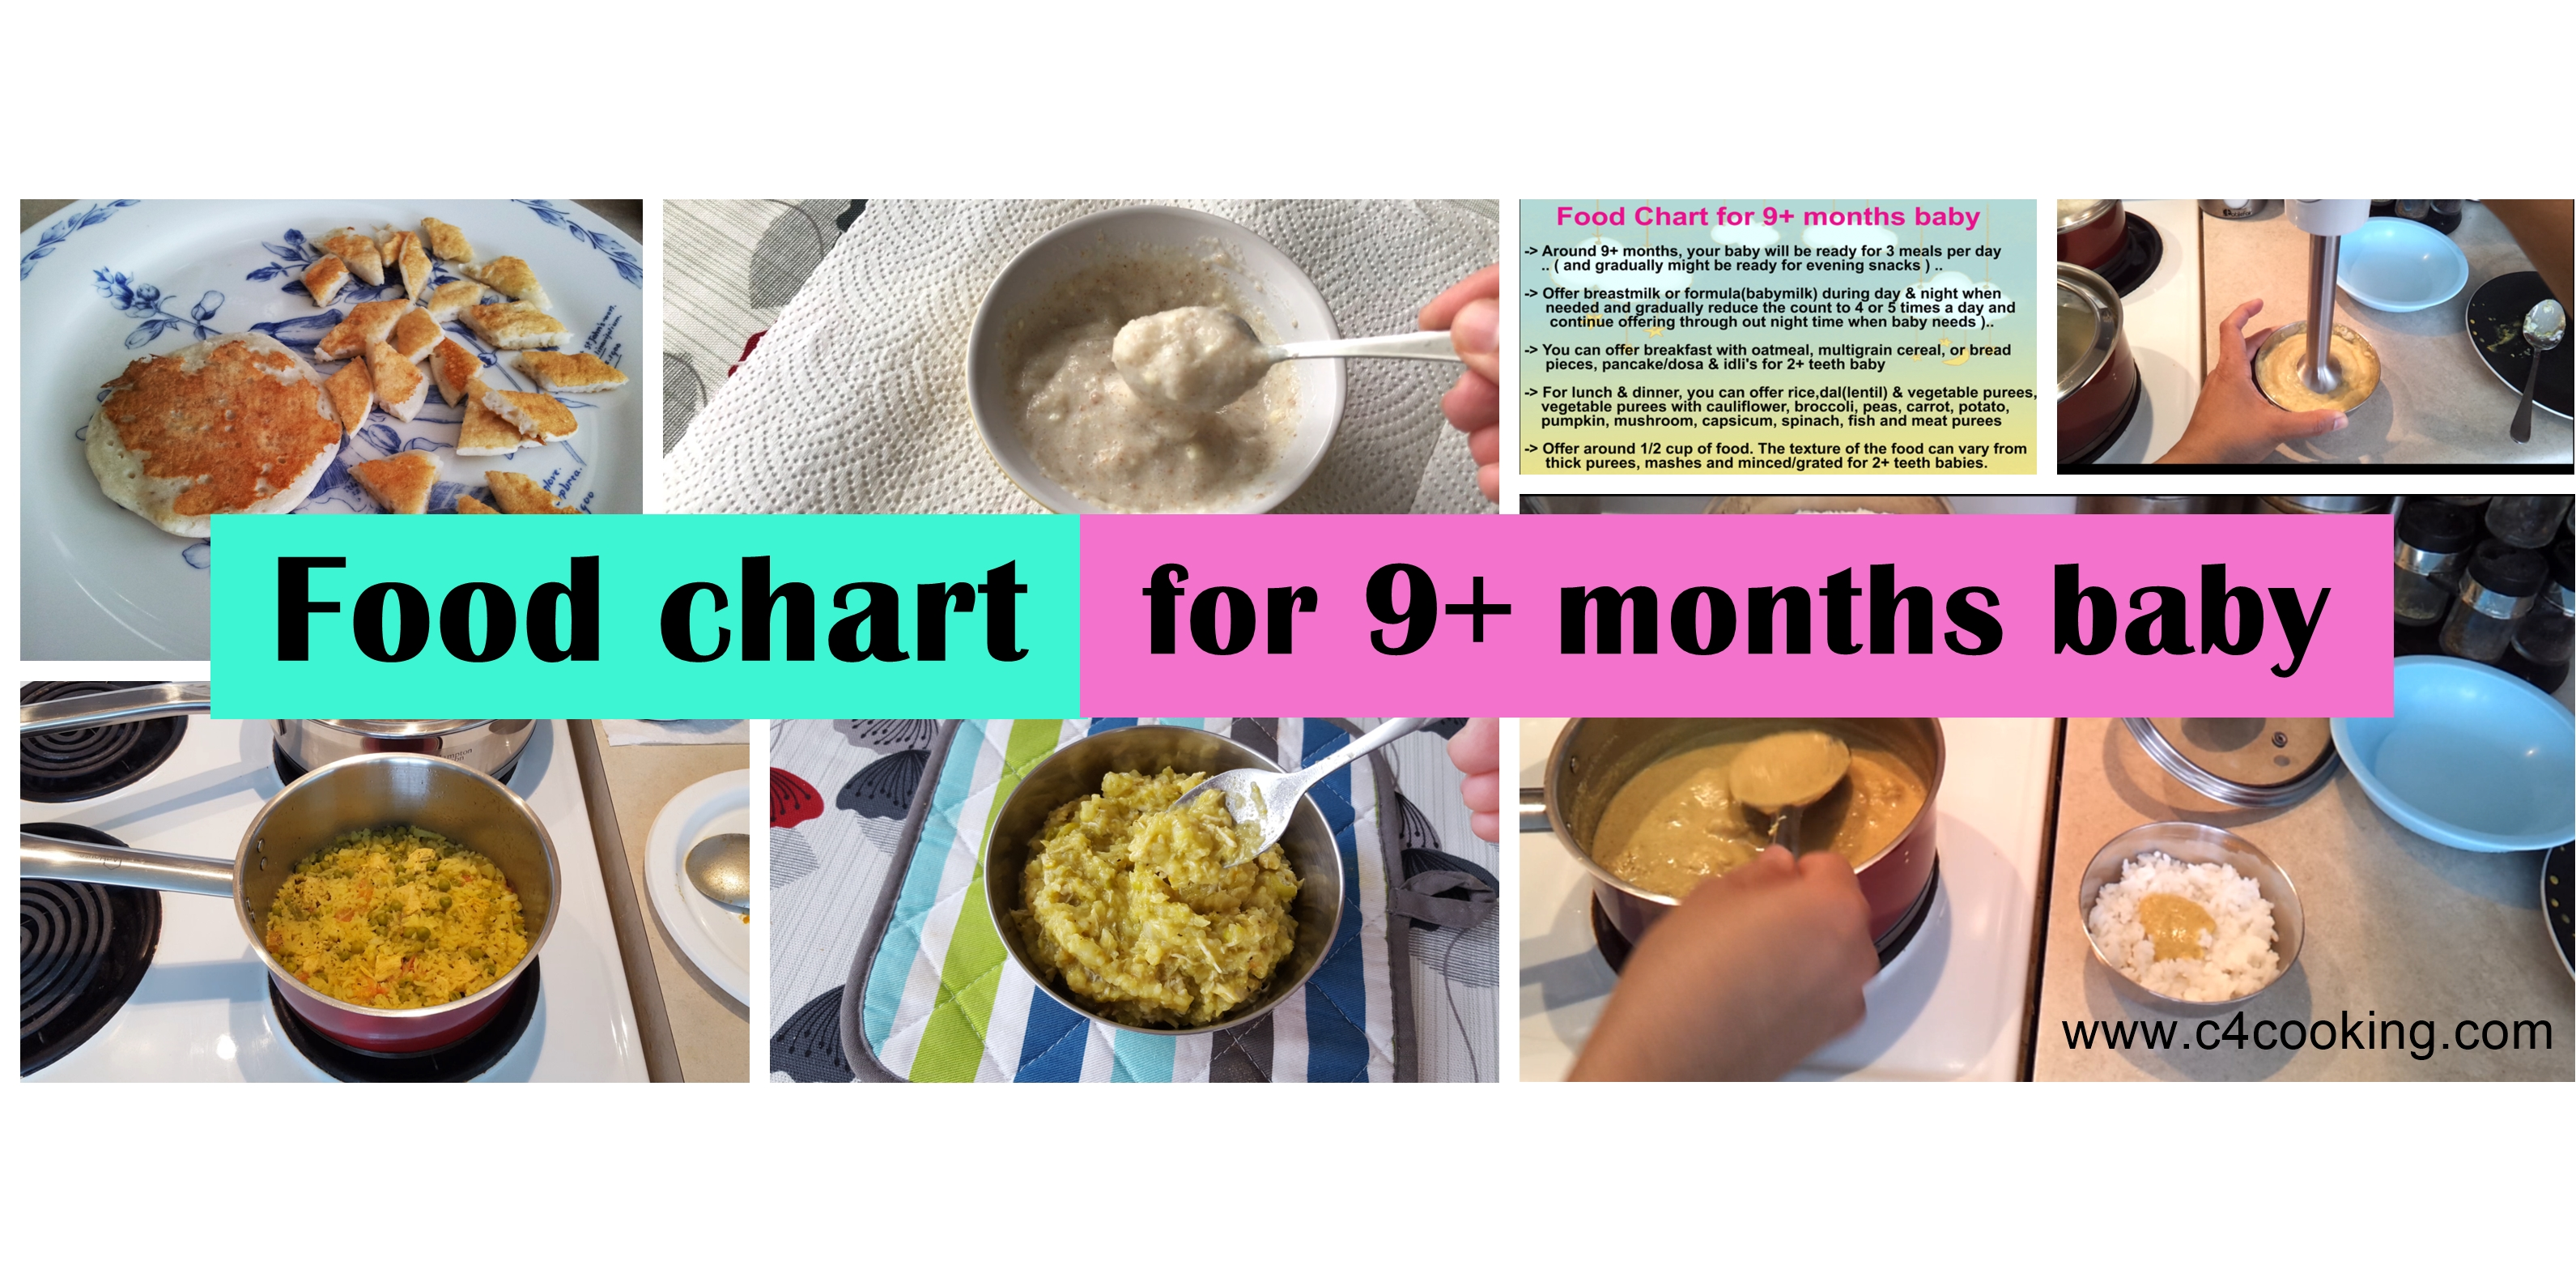 foodchart 9months baby